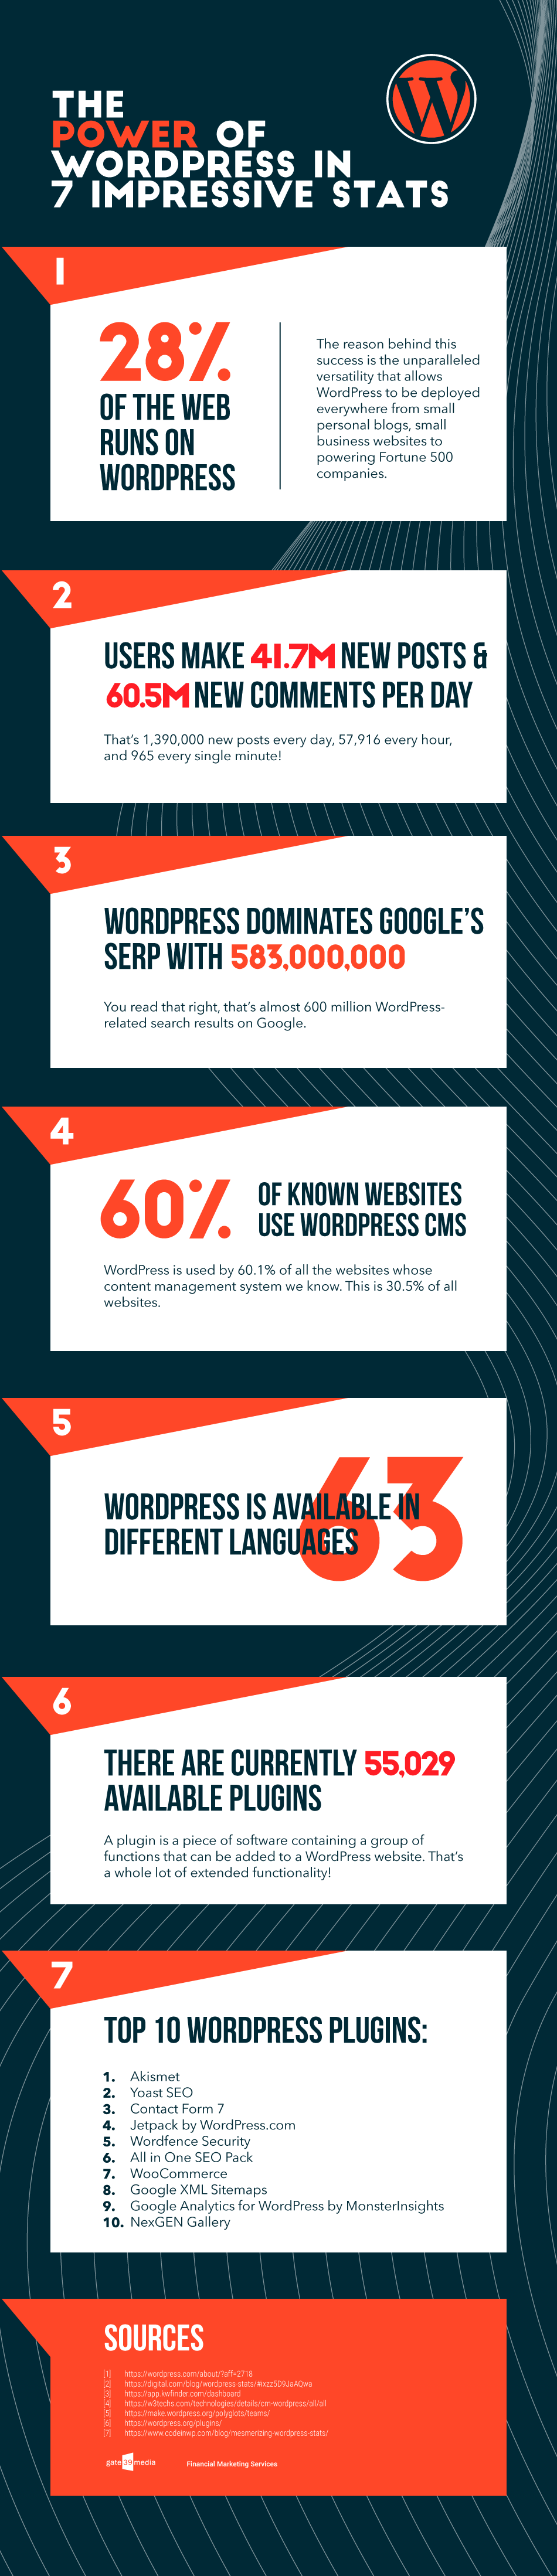 The Power of WordPress in 7 Impressive Stats